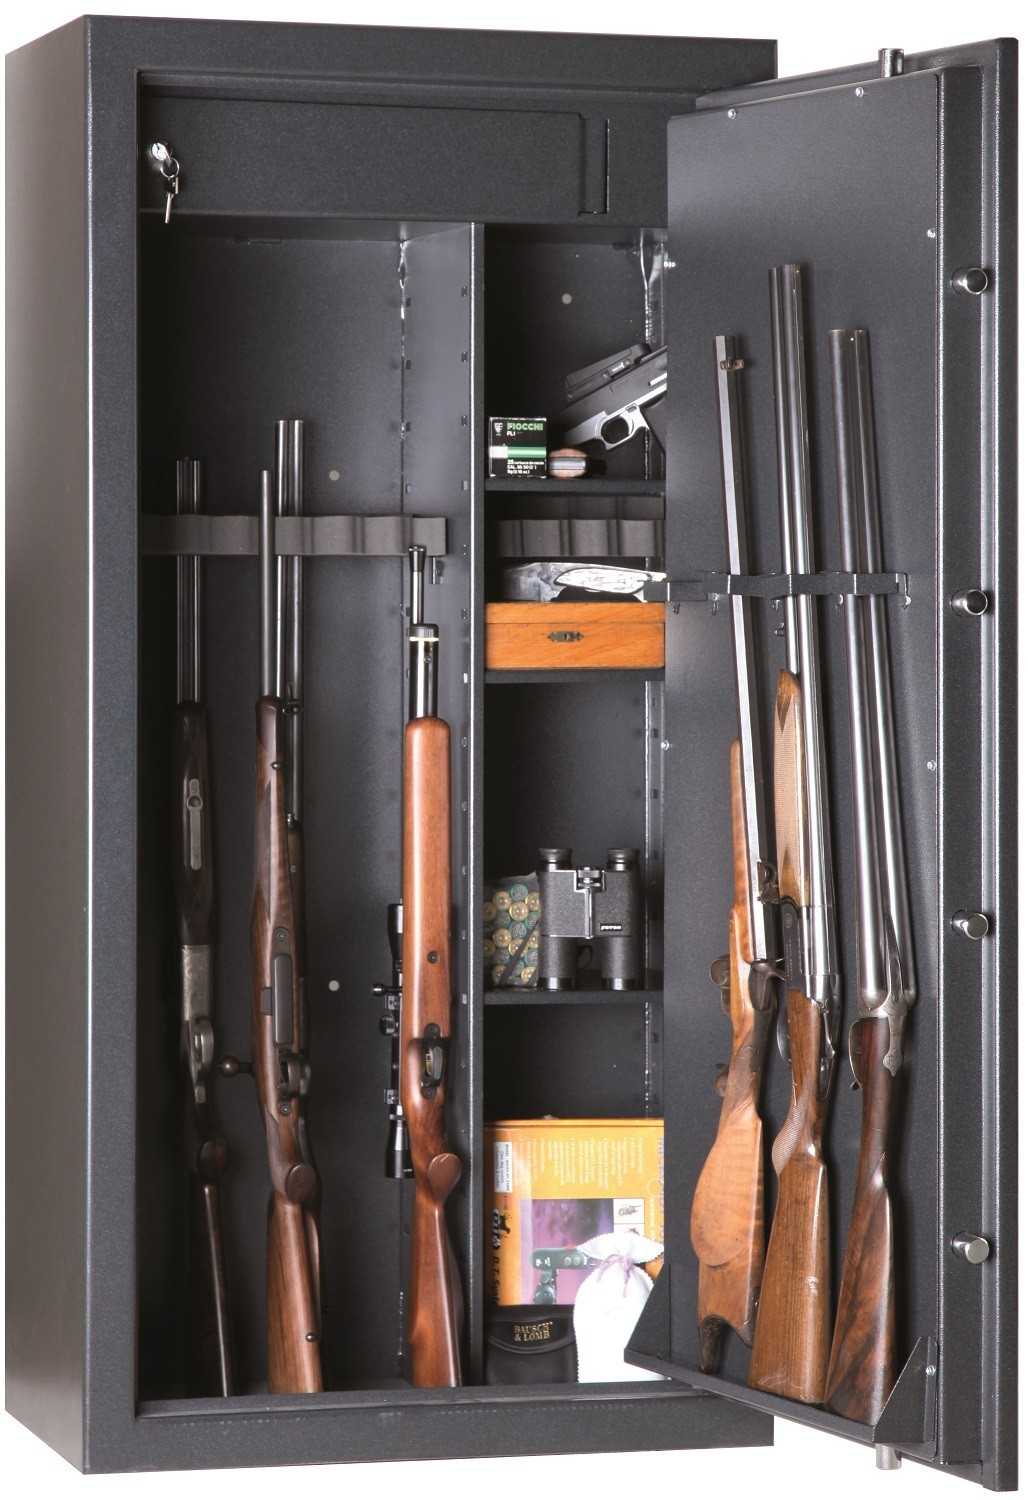 Armoire forte infac classic 30 ou 20 armes tag res - Armoire a fusil promotion ...